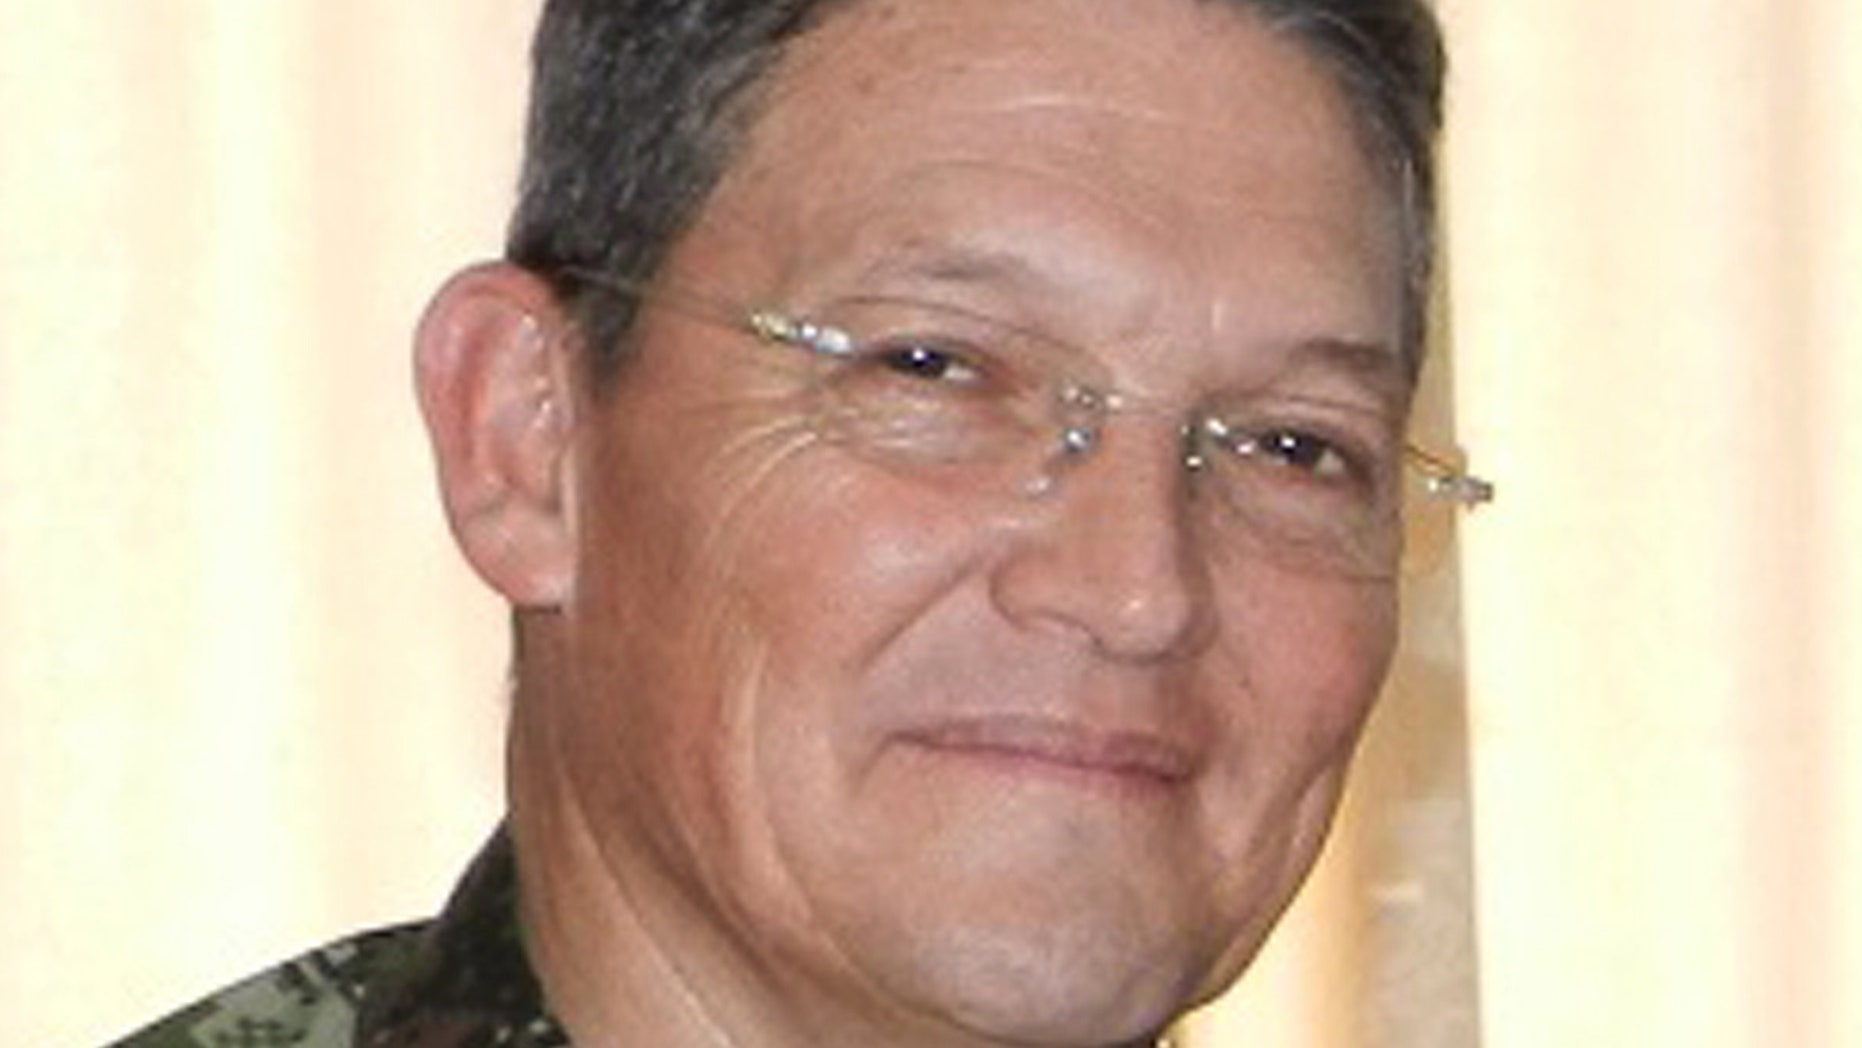 Aug. 15, 2014: Colombian Army Gen. Ruben Dario Alzate in Colombia. Colombian President Juan Manuel Santos suspended peace talks with the South American nation's largest rebel group after Alzate was taken captive